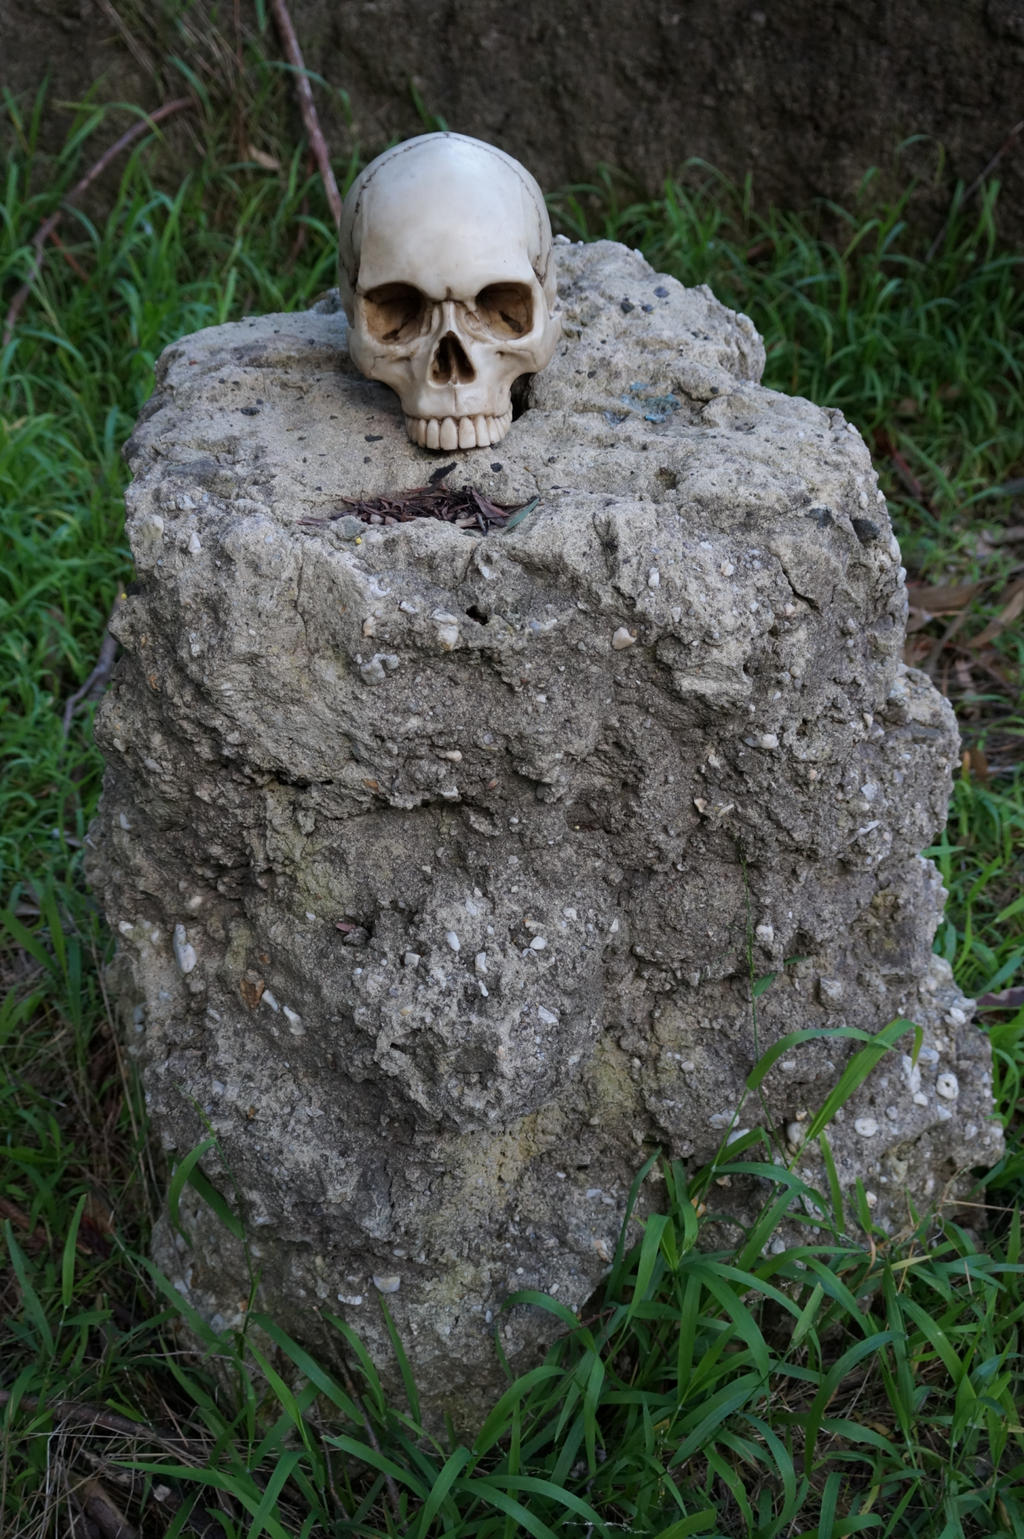 Human Skull 009 - HB593200 by hb593200